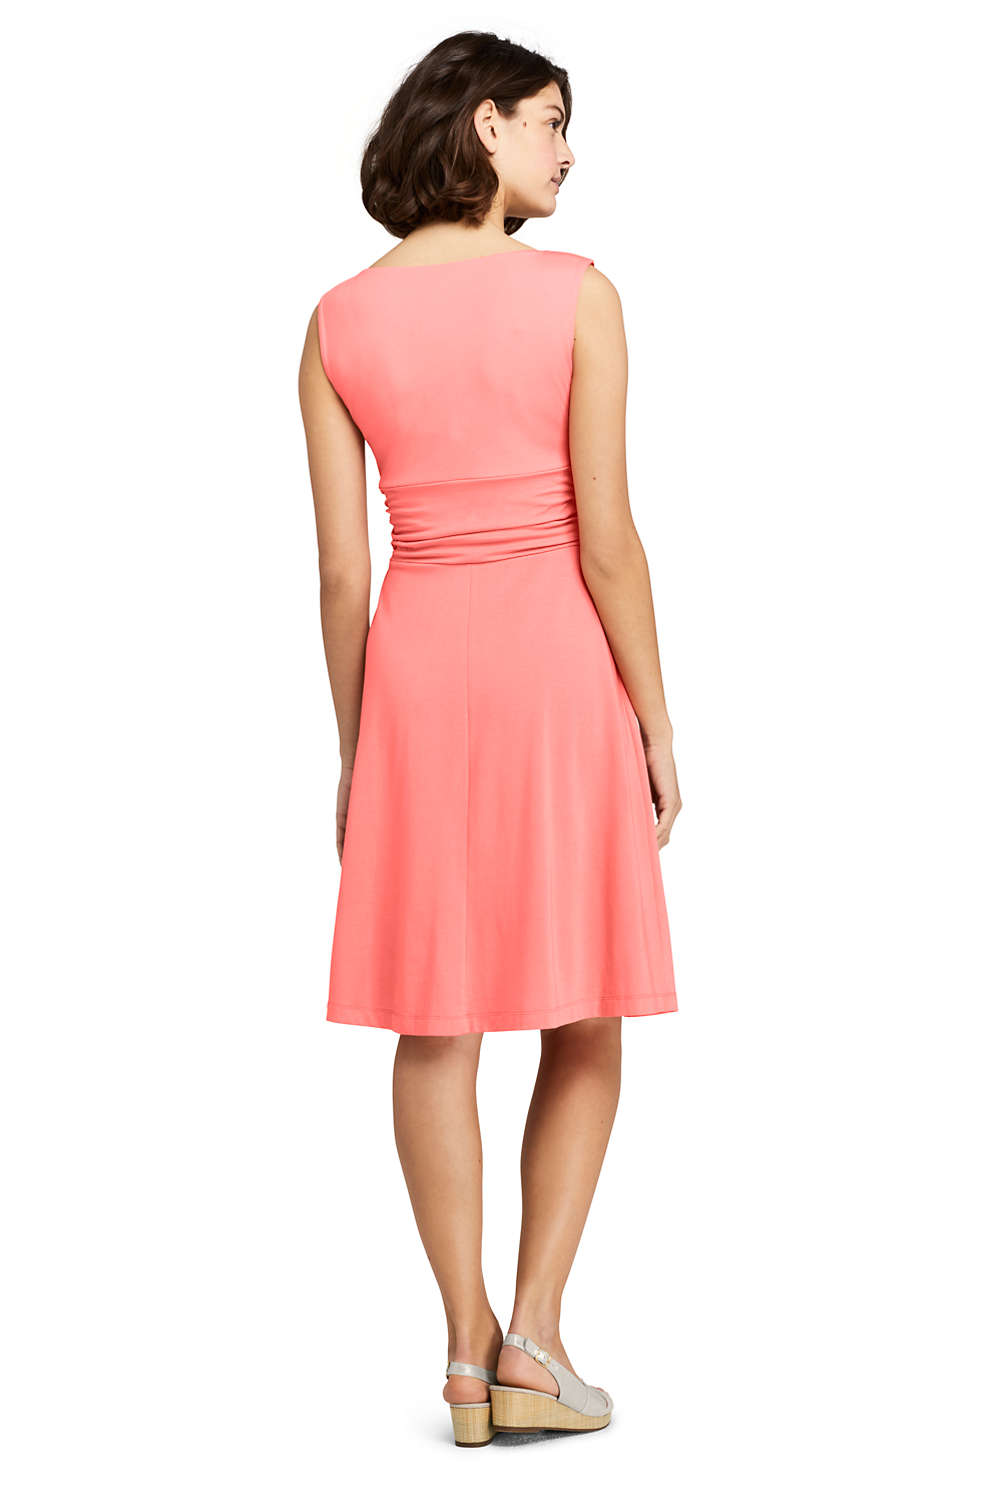 f09704d42ab4 Women s Wrap Front Fit and Flare Dress Knee Length from Lands  End